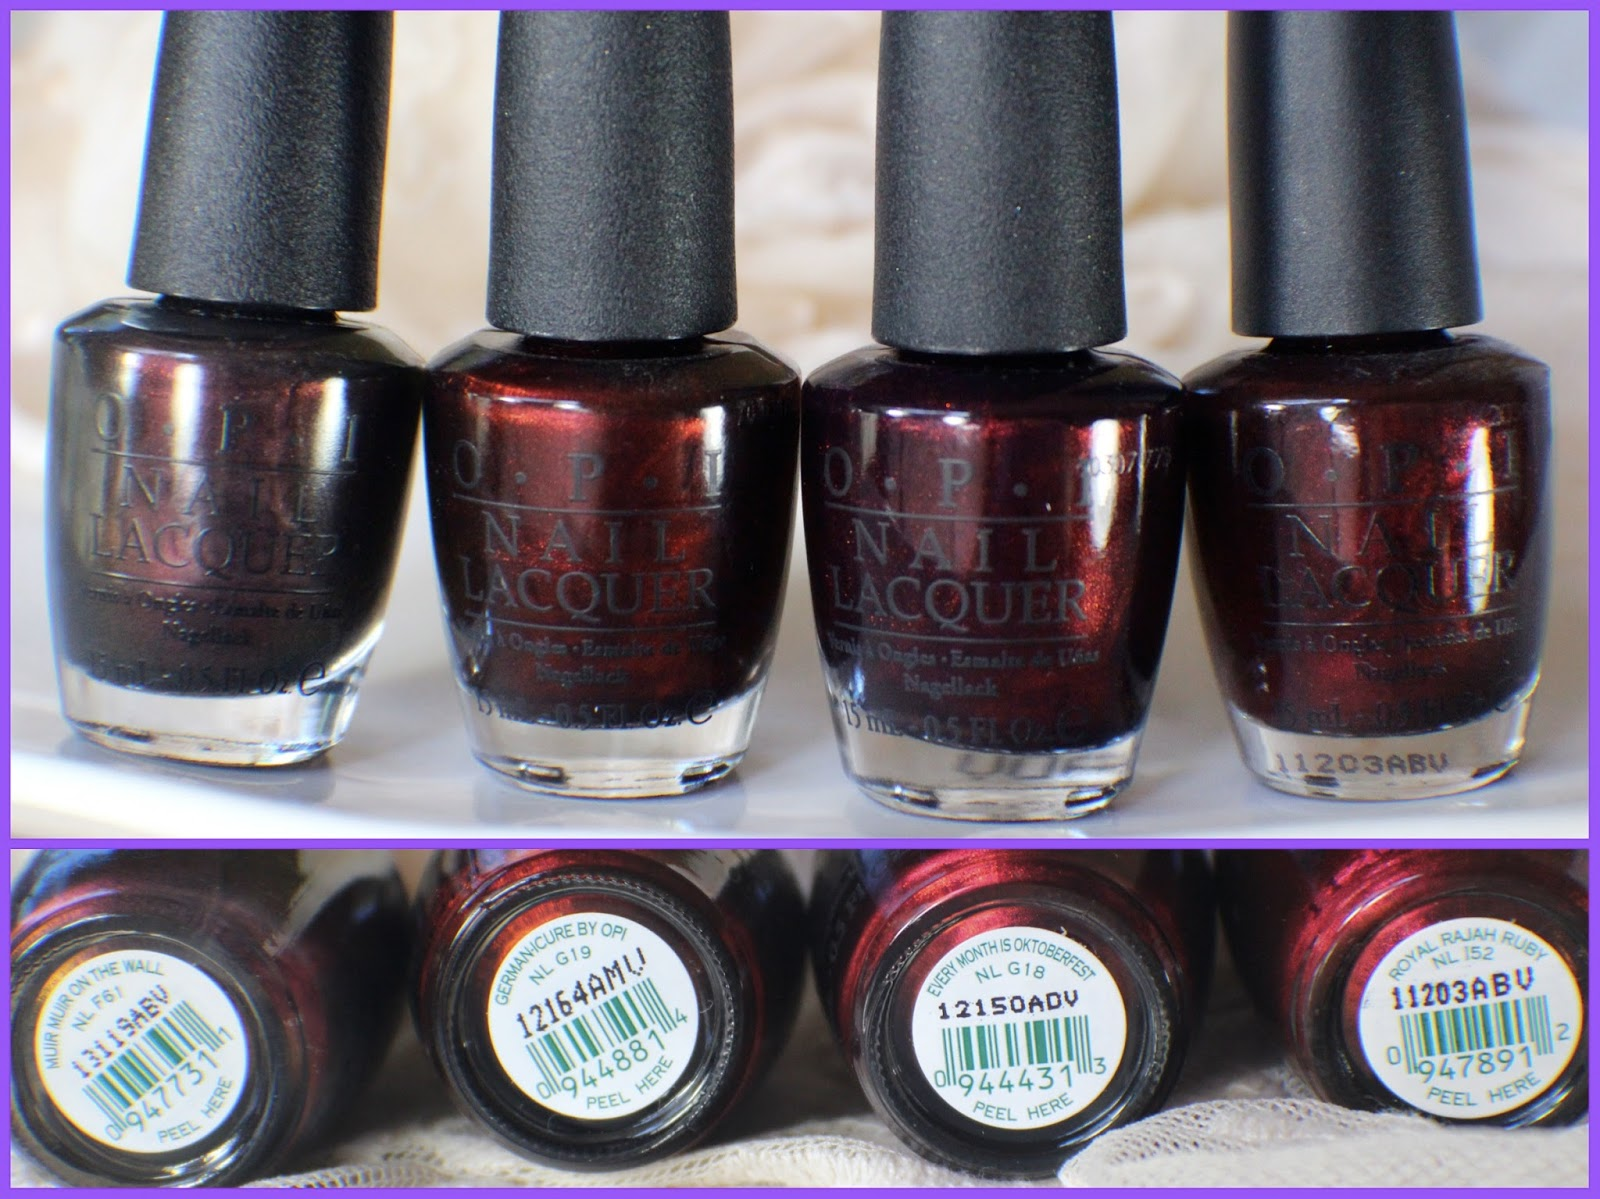 OPI Muir Muir On The Wall – Comparisons! – yukieloves.com